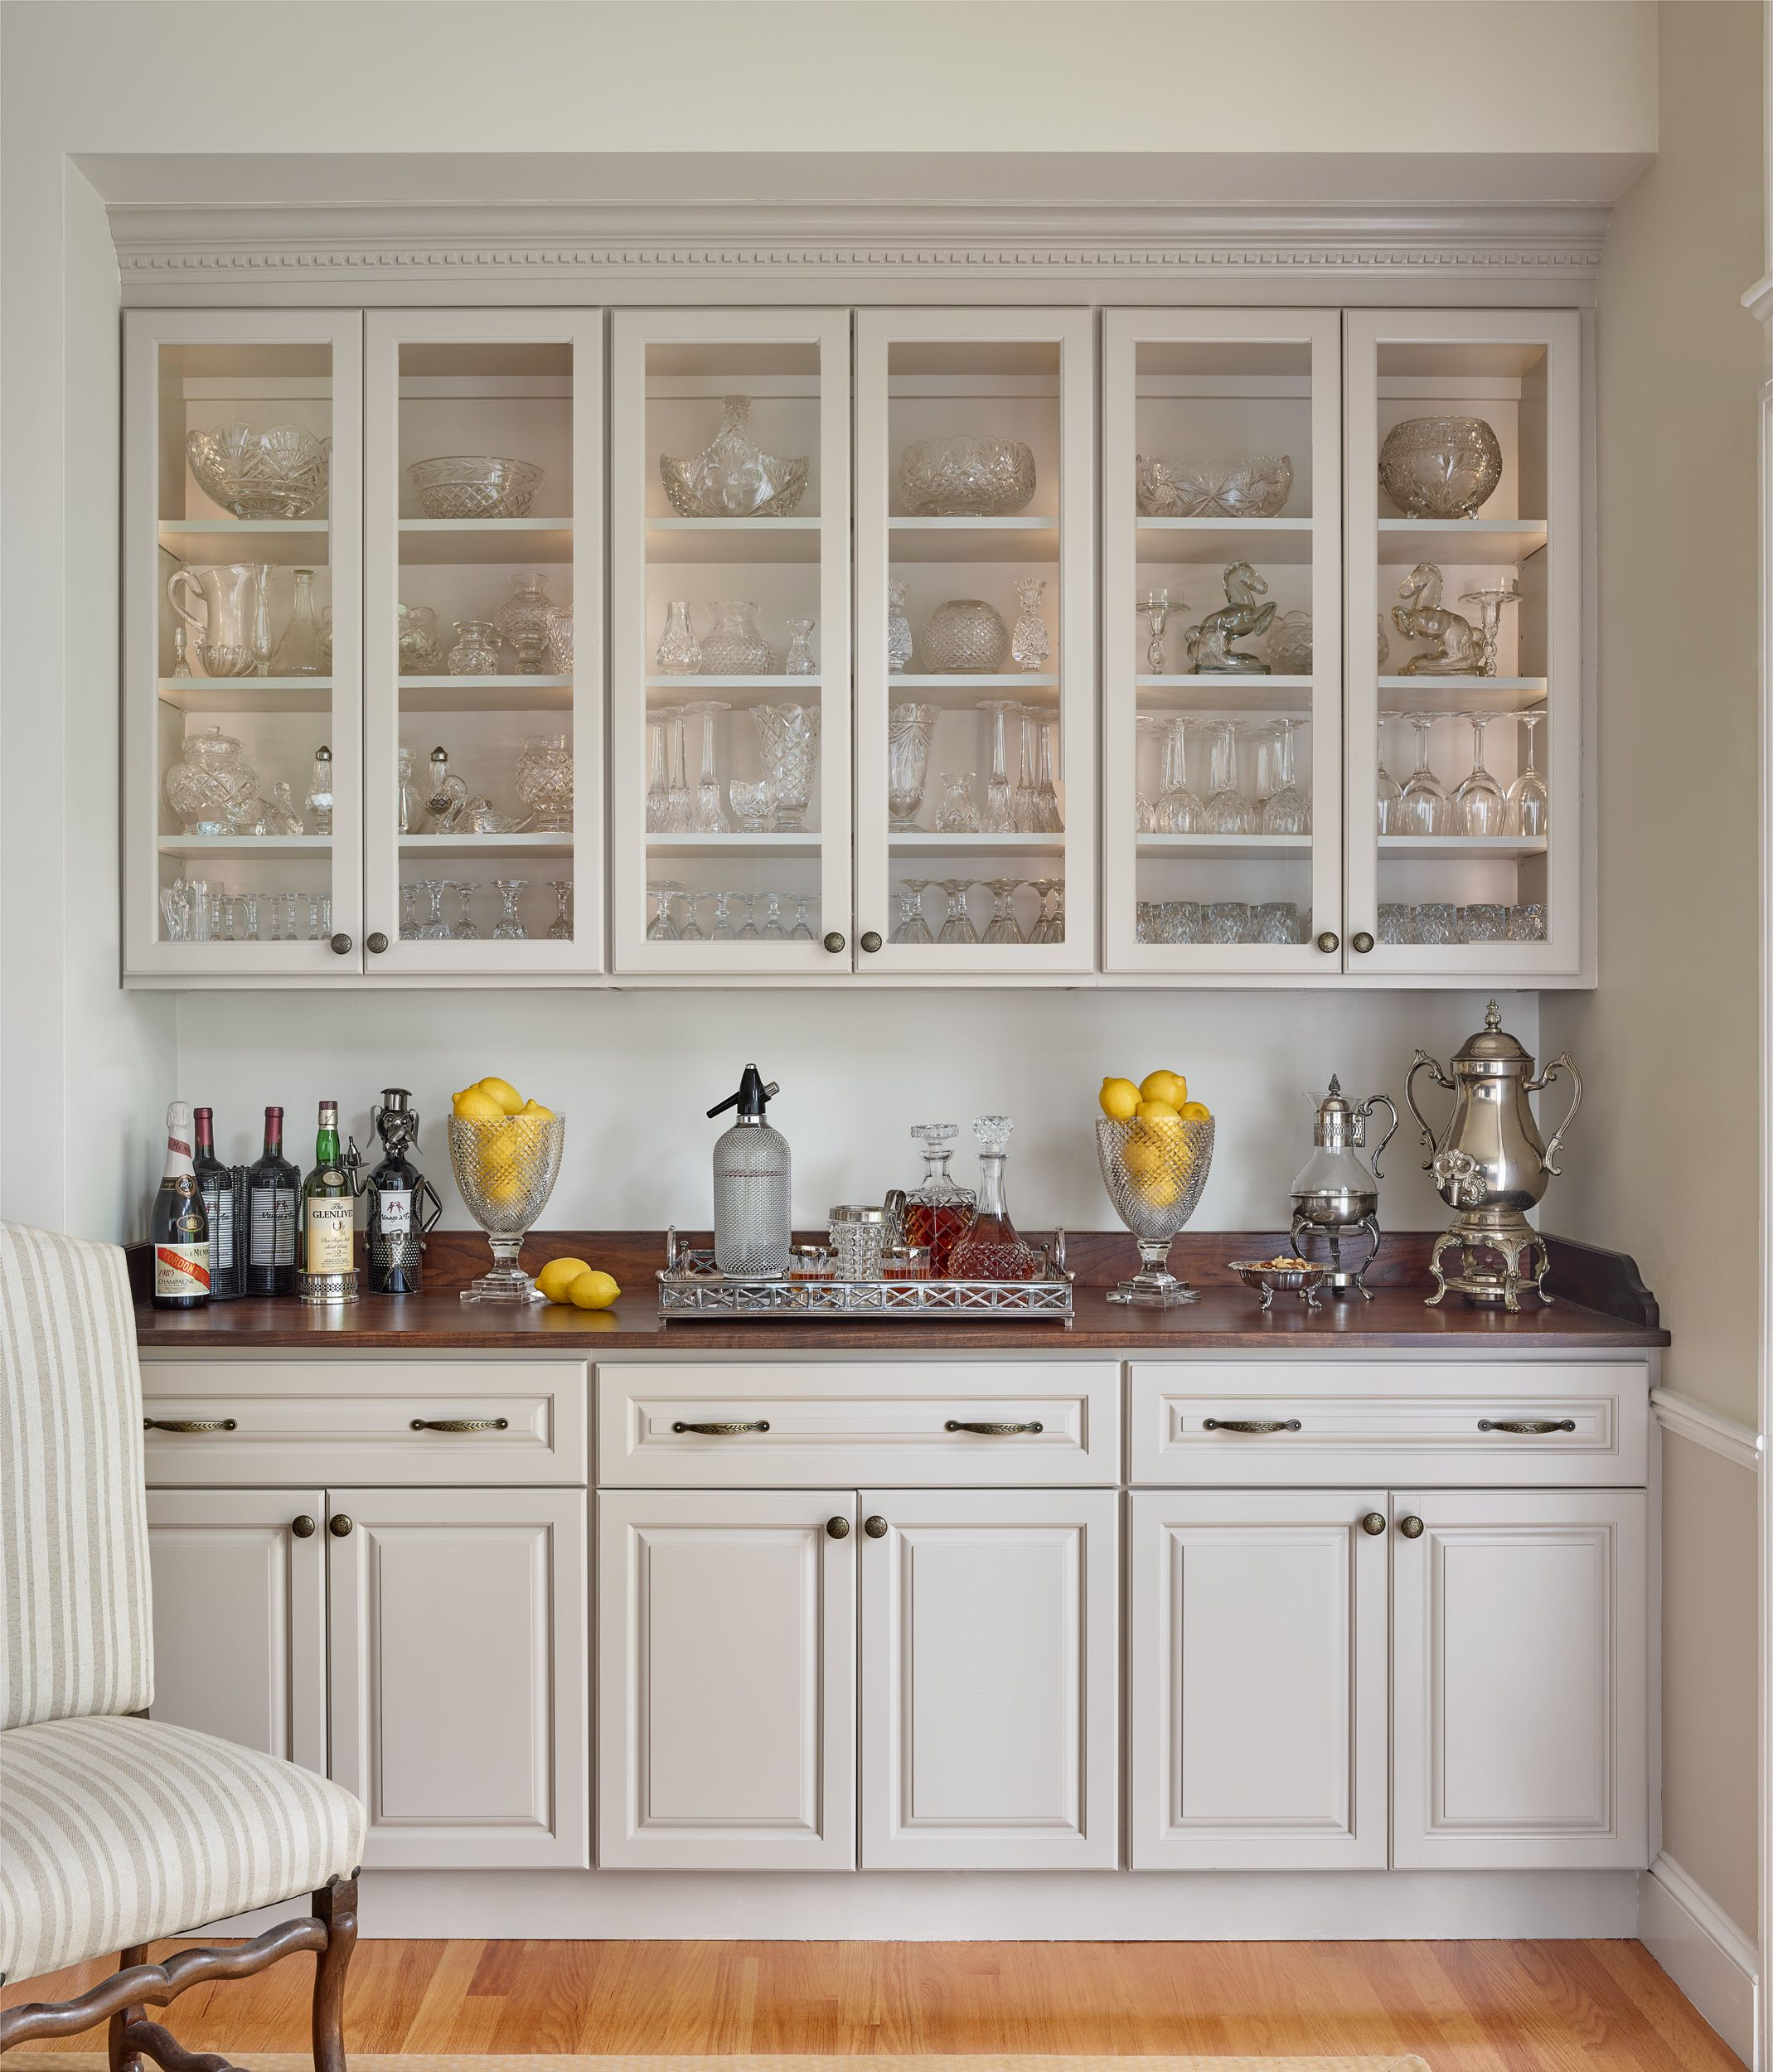 Dining Room Built In Cabinet For Storage Display And Serving Dining Room Buffet Built In Buffet Modern Kitchen Cabinets